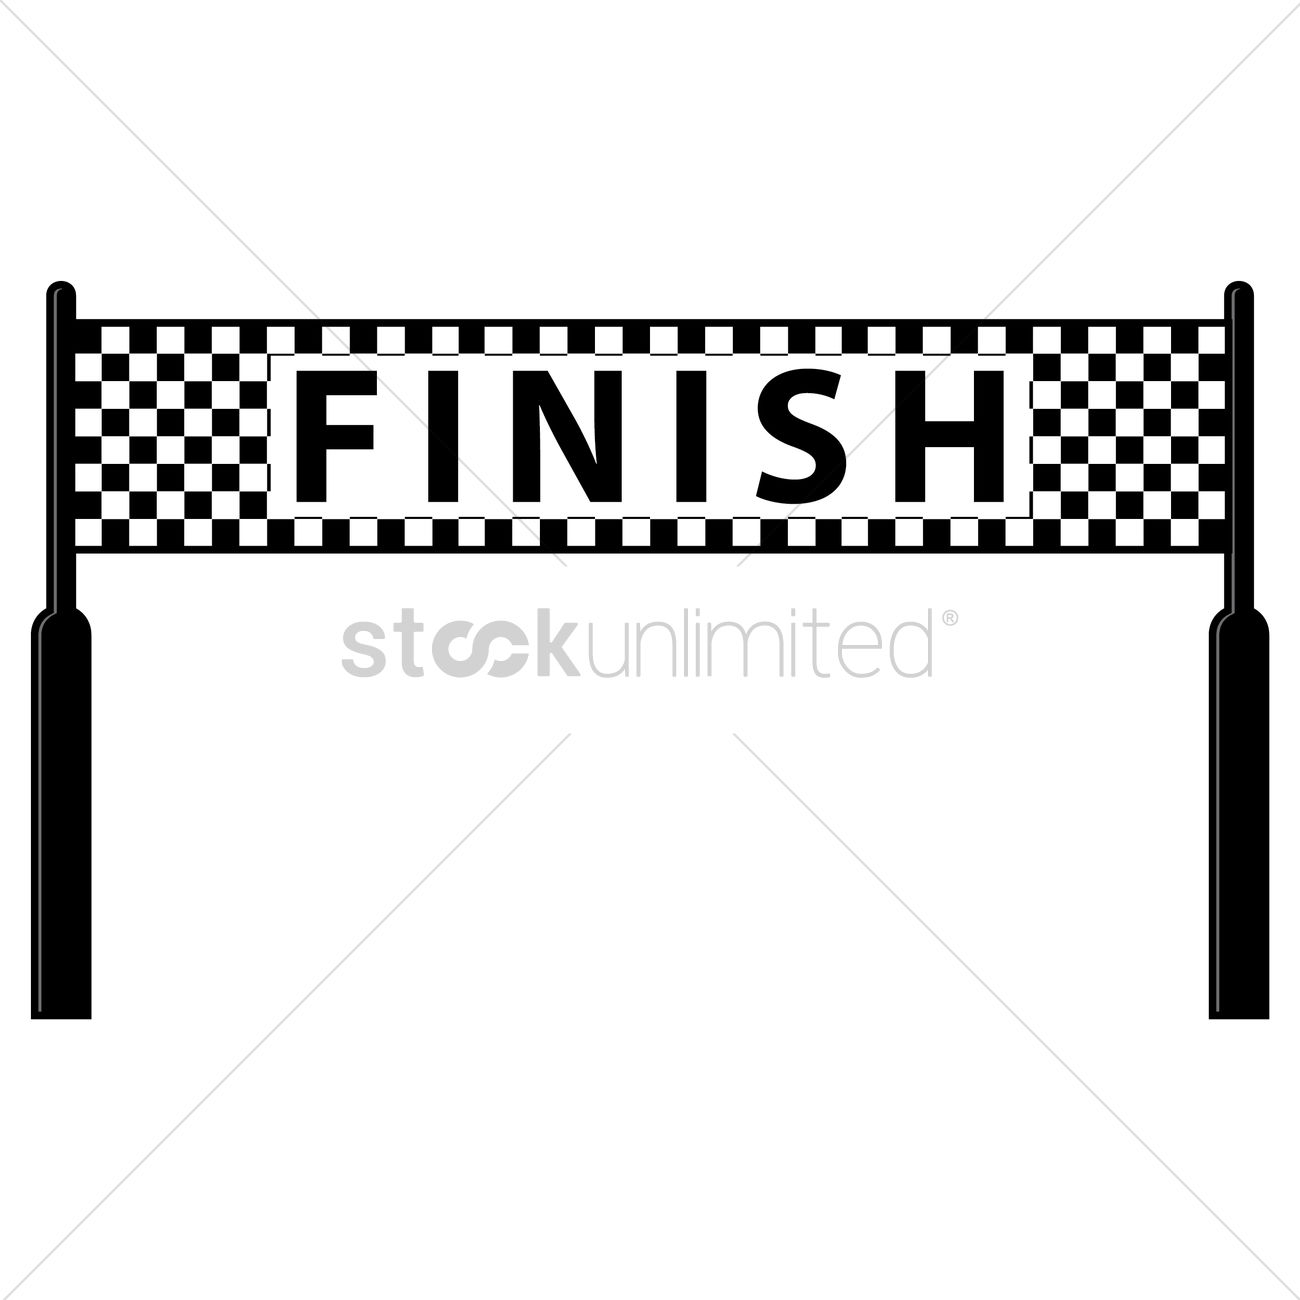 Finish Line Vector Image 1479002 Stockunlimited